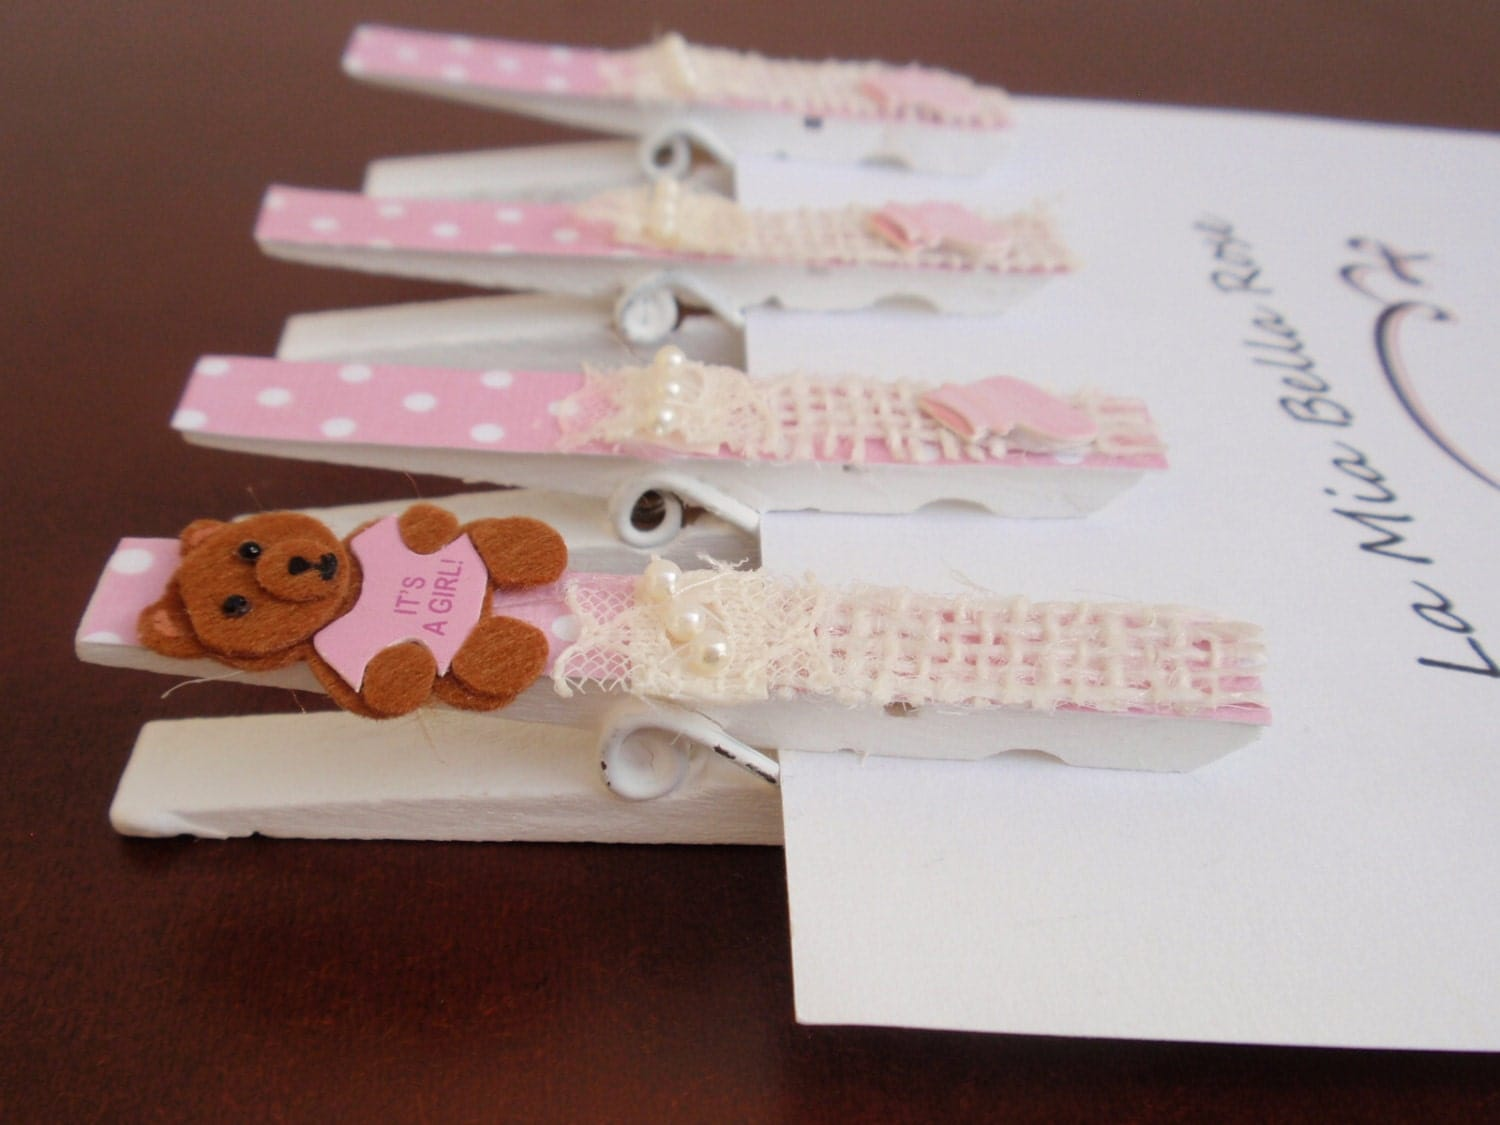 baby shower clothespins it 39 s a girl decorated with teddy